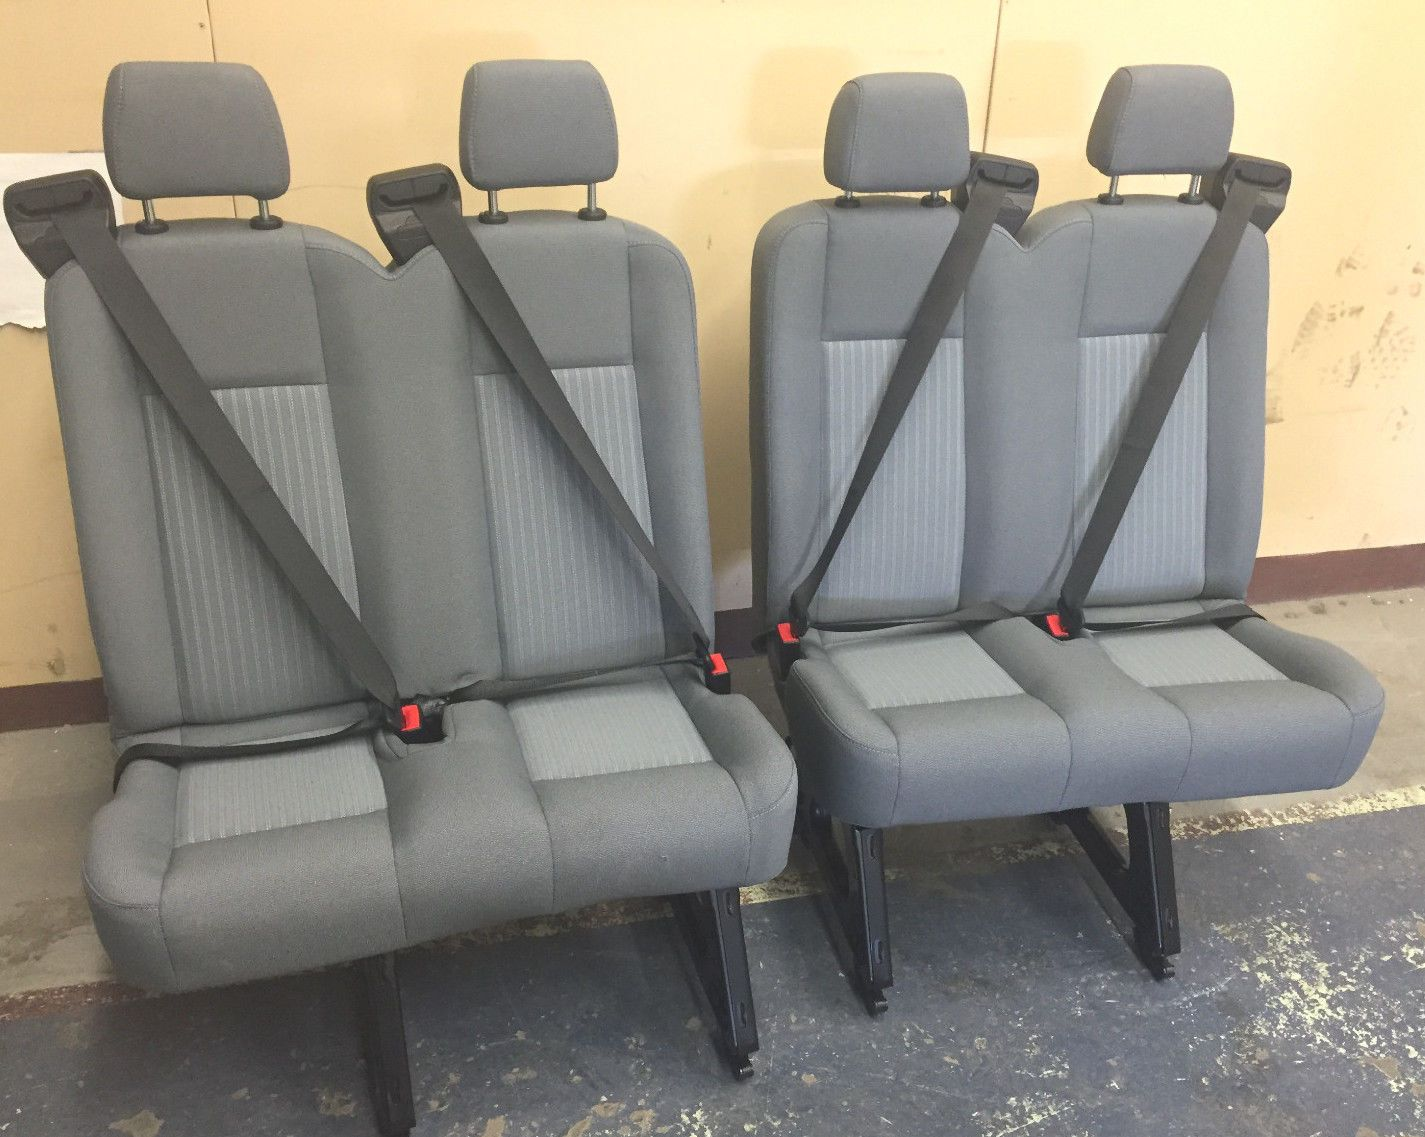 2015 Ford Transit Van 4 Person Bench 2 Double Seats Gray